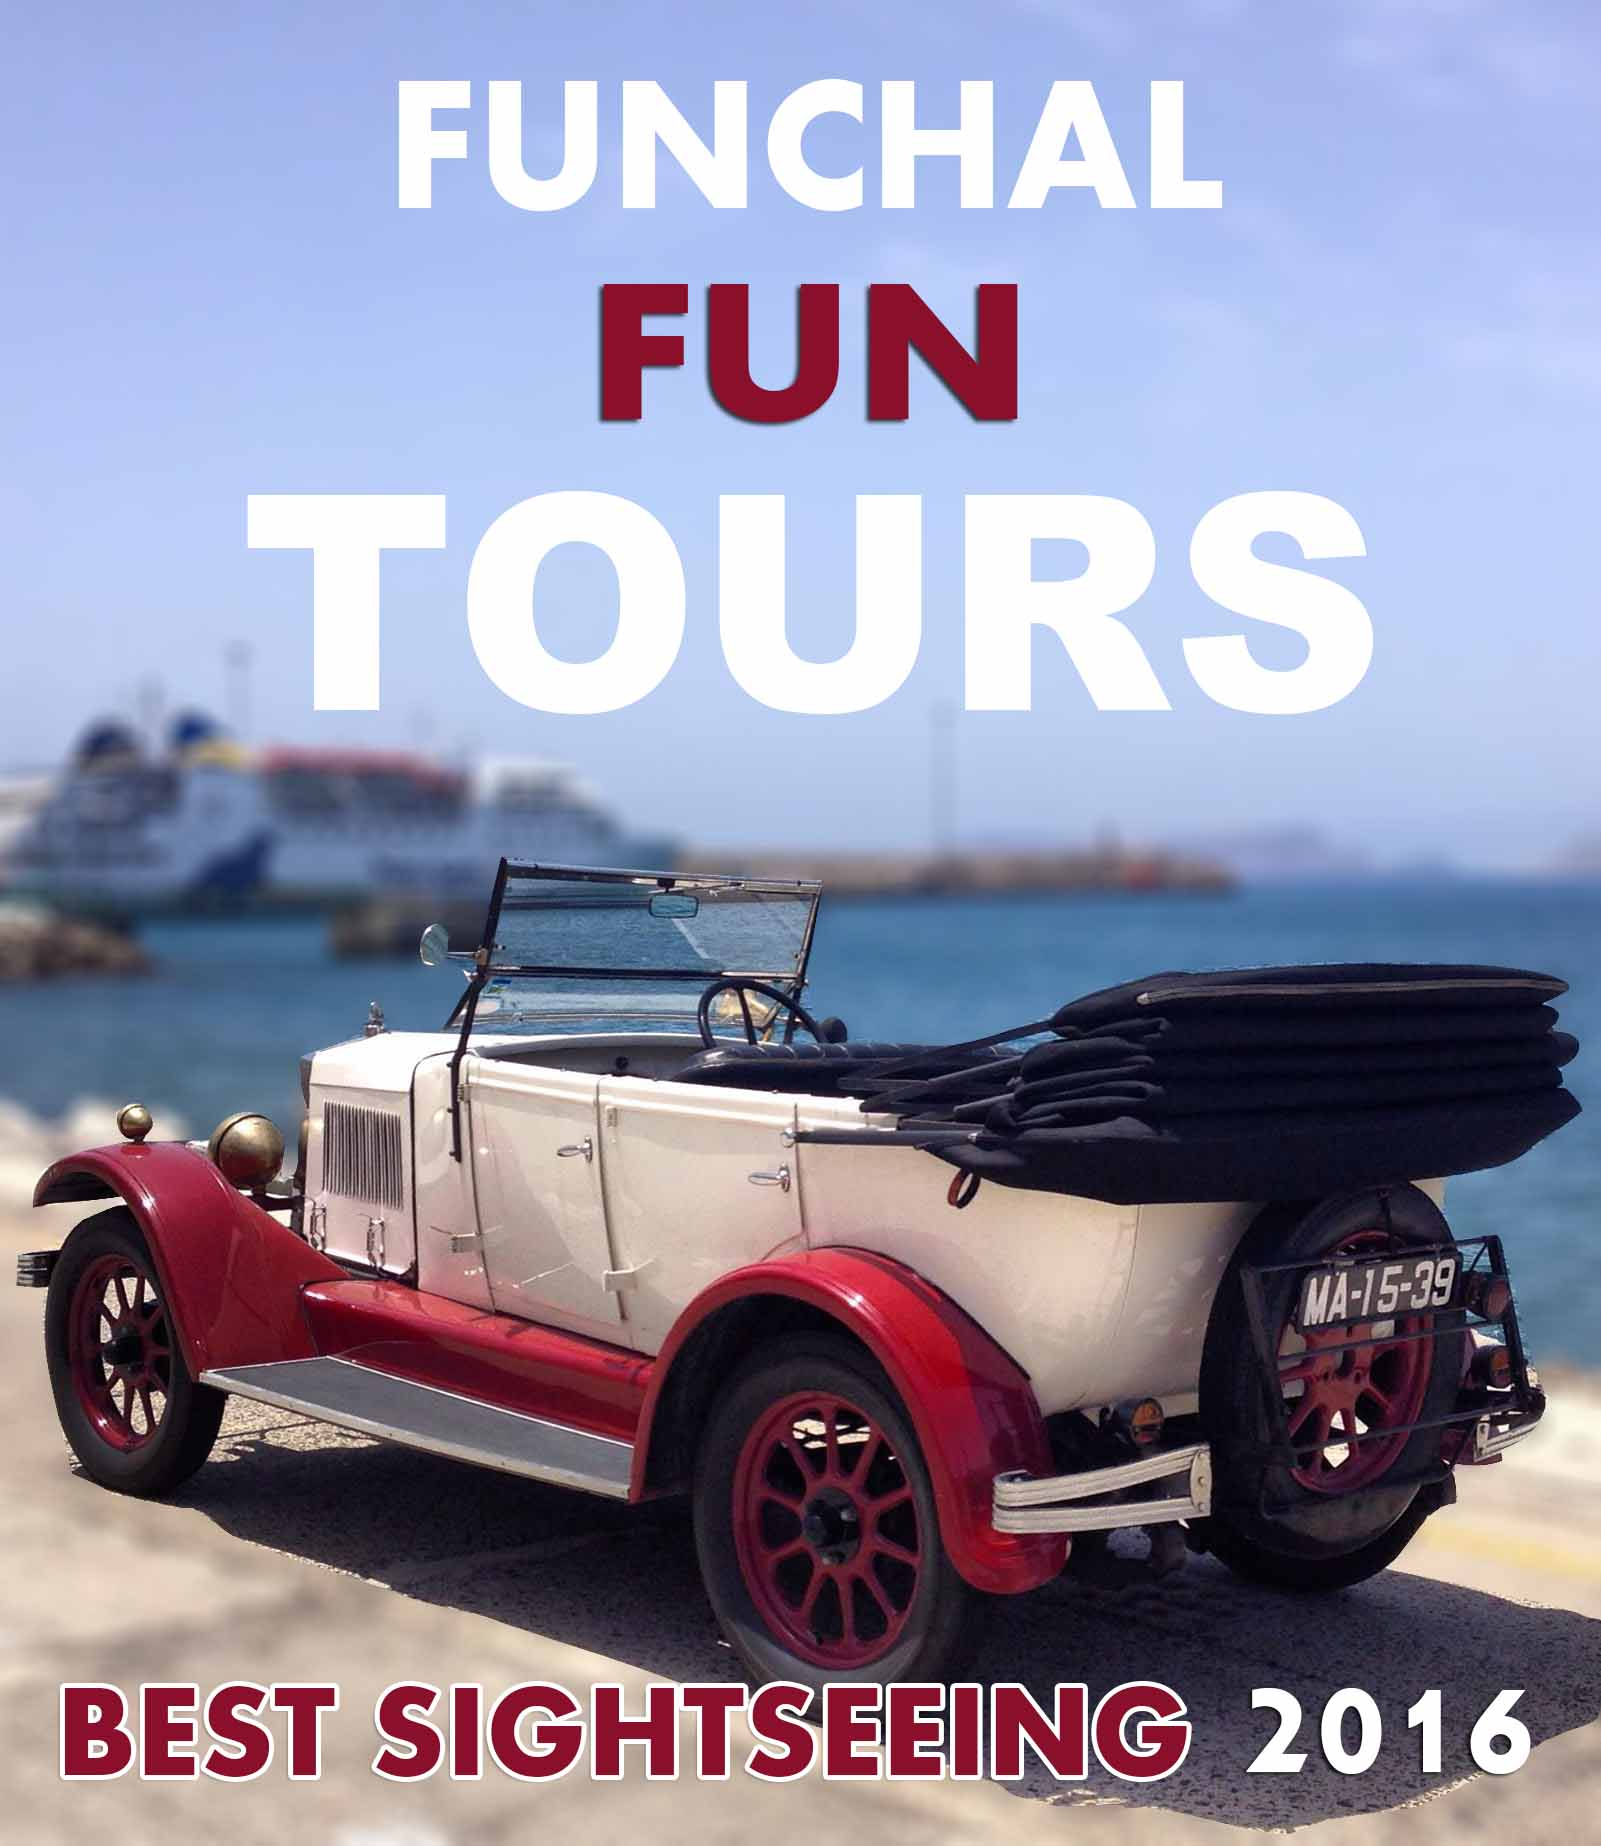 Funchal Fun Tours